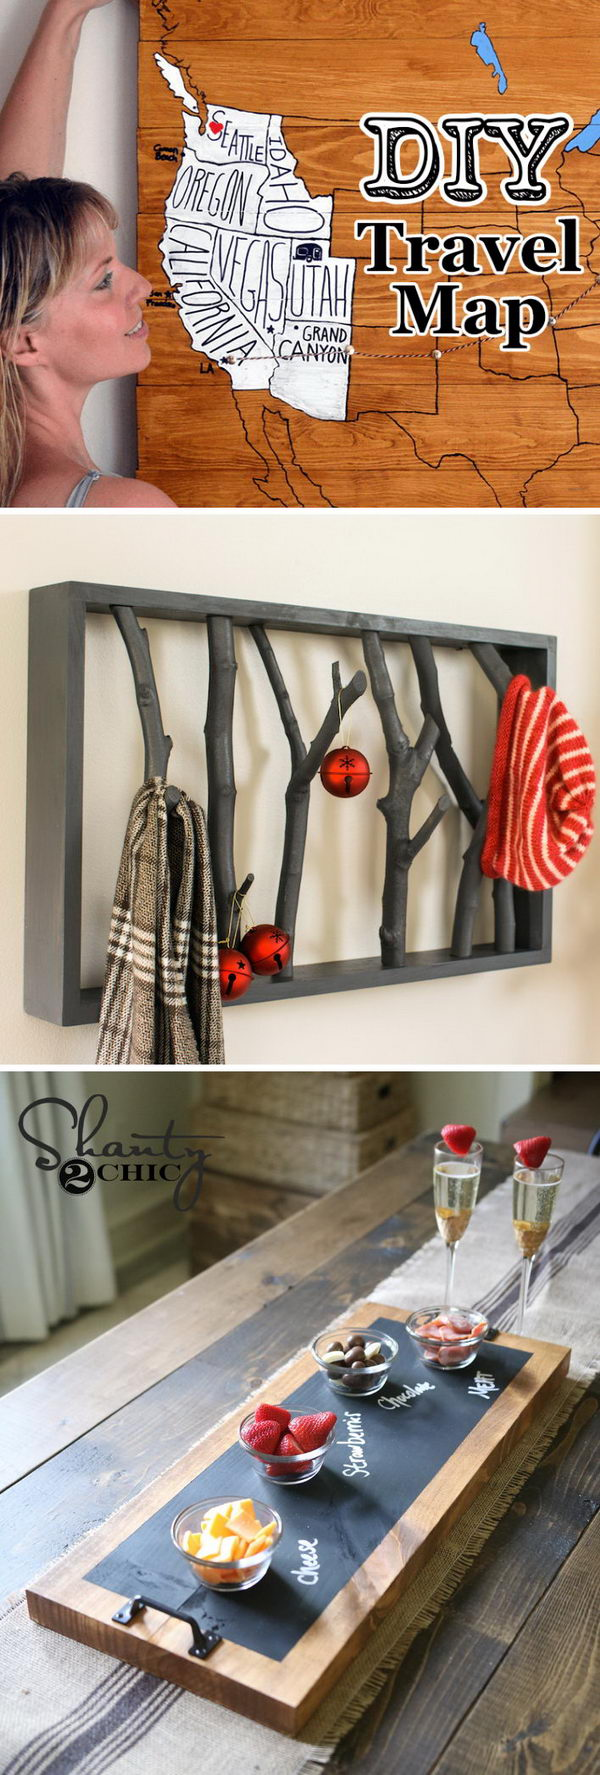 DIY Gift Ideas and Tutorials For Any Occasion.